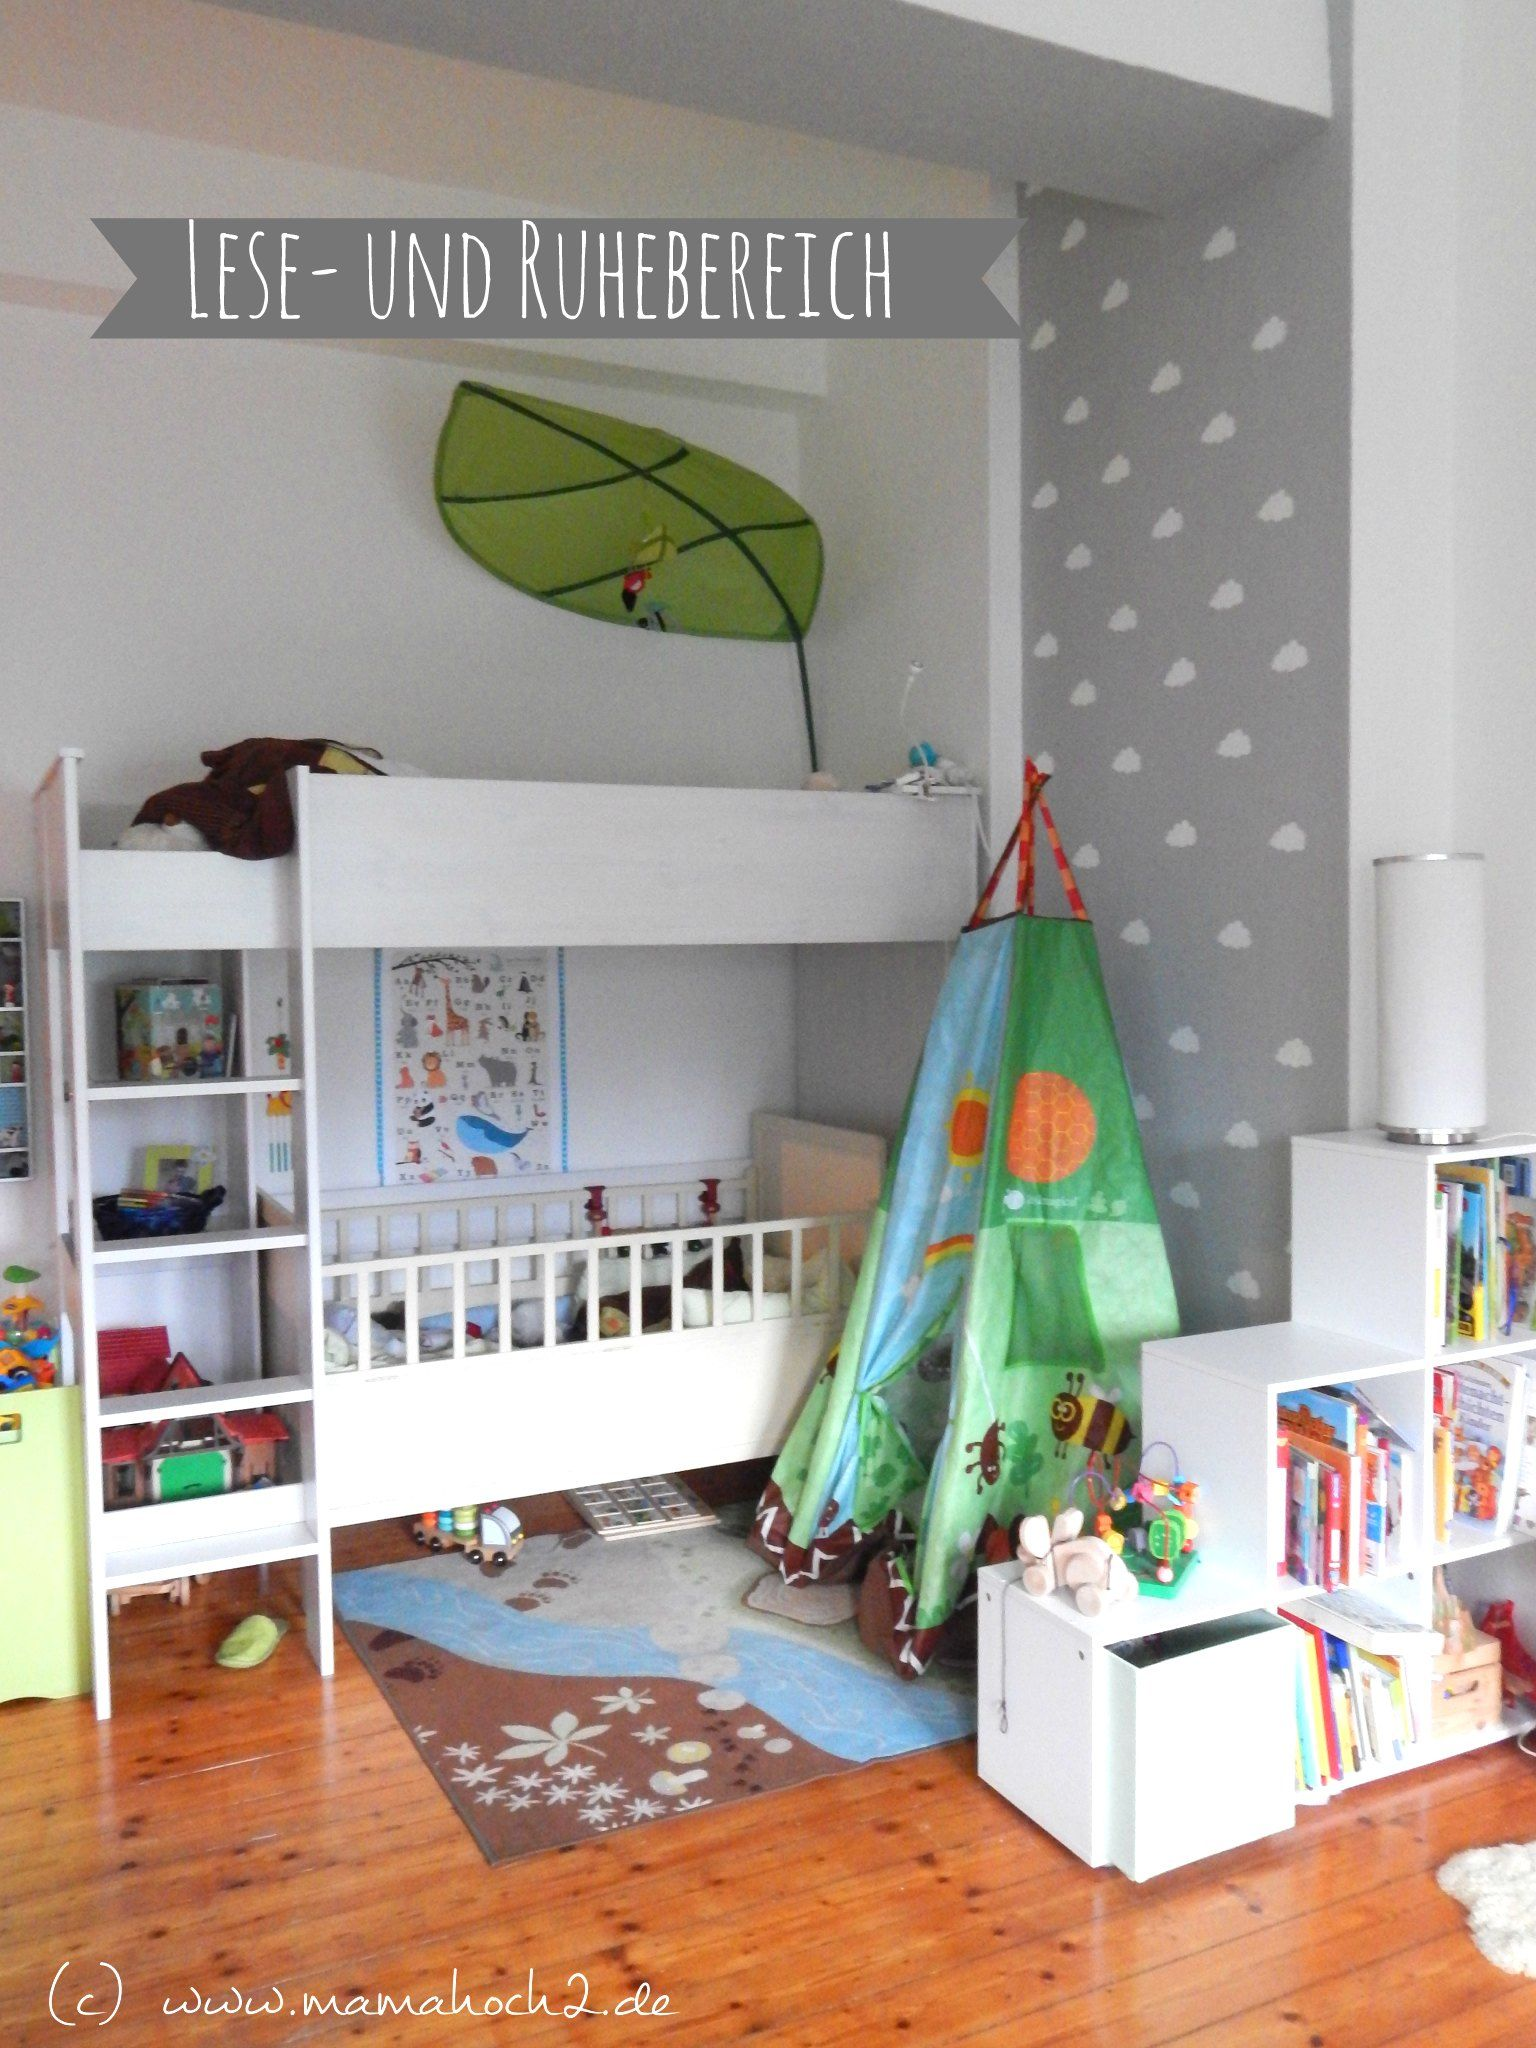 kinderzimmer f r zwei lausebengel kinderzimmerideen kinderzimmer ideen inspirationen. Black Bedroom Furniture Sets. Home Design Ideas